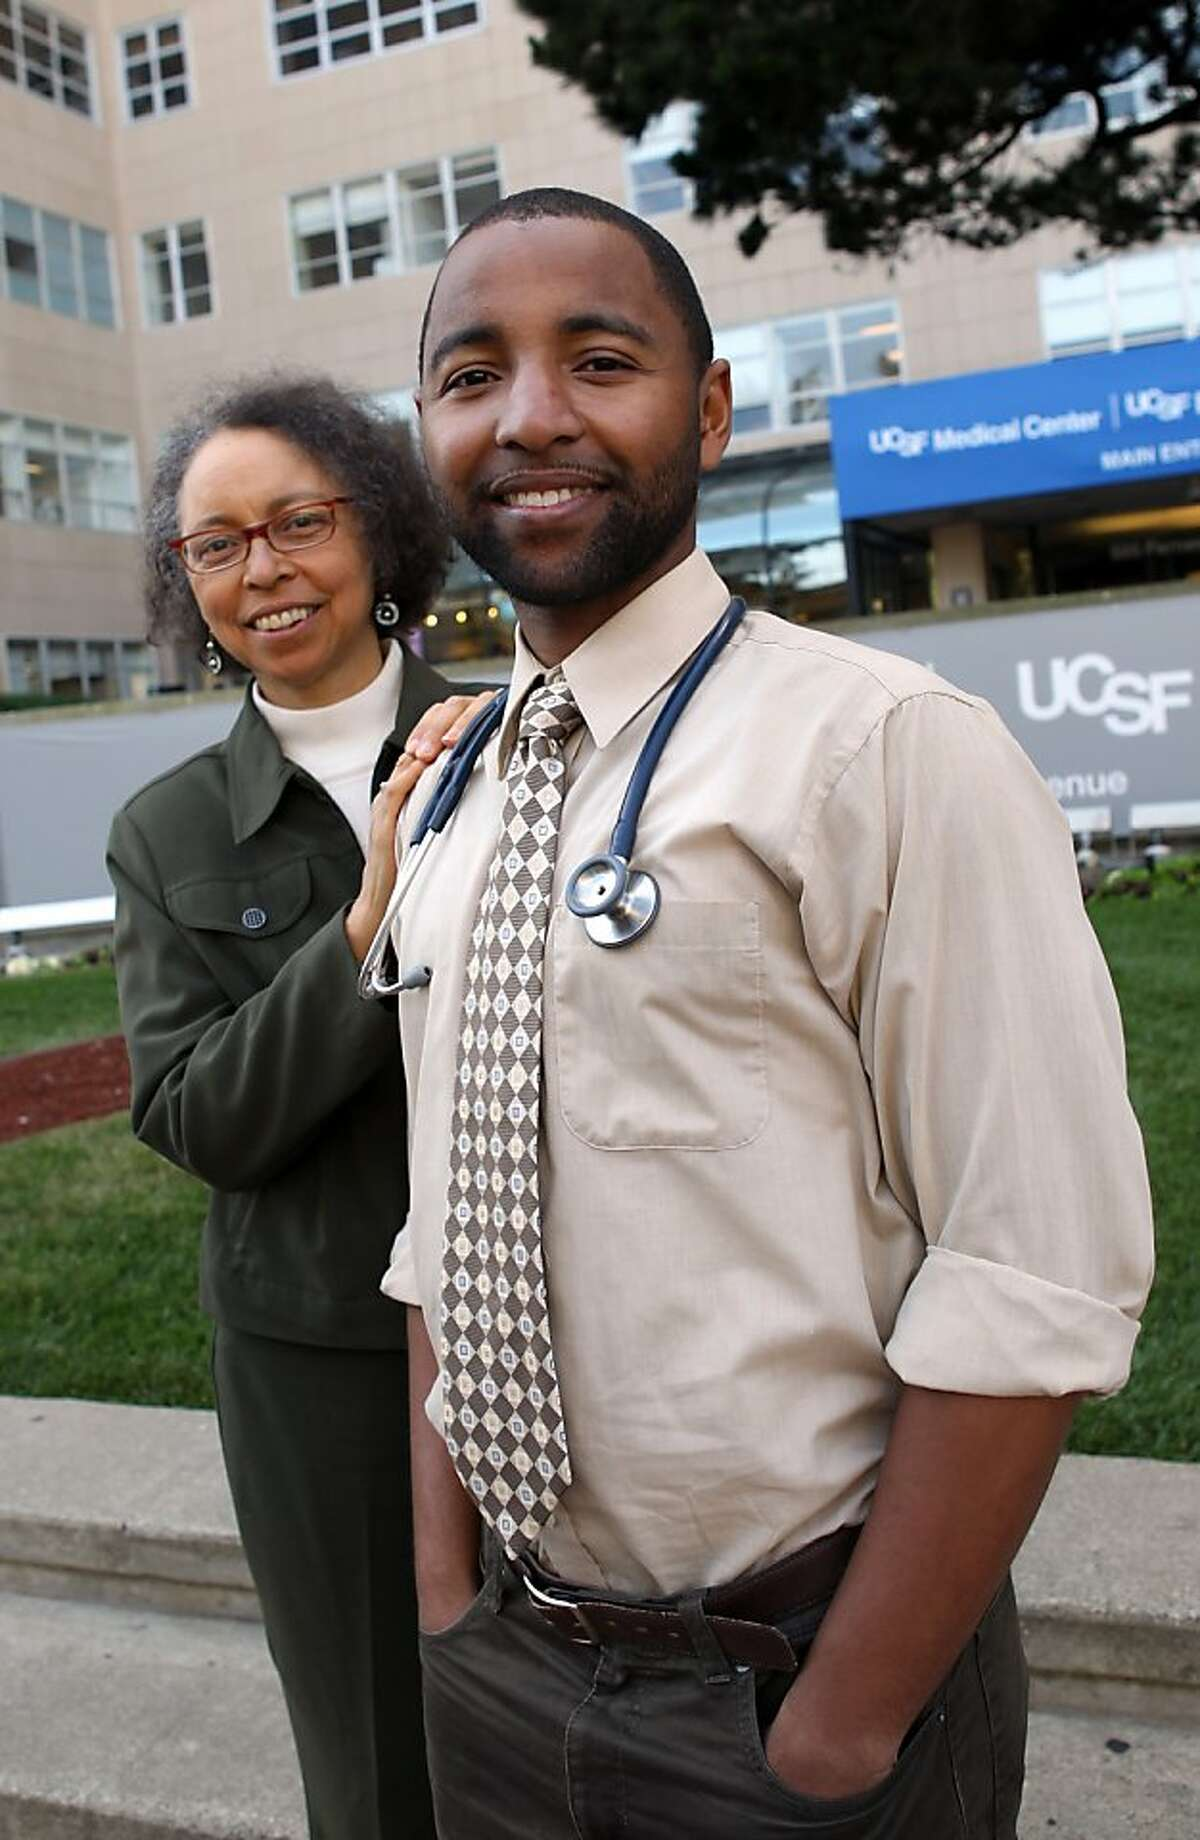 Alma Robinson, left, and her son, Willie Moses, right, stand outside the UCSF Hospital in San Francisco, CA Thursday, May 5, 201, where Moses is about to graduated from medical school. Robinson also attends classes at UCSF in the Mini Medical School for the public, a series of programs about health and health sciences taught by UCSF experts. Moses also attended classes at the MiniMedical School while in high school.